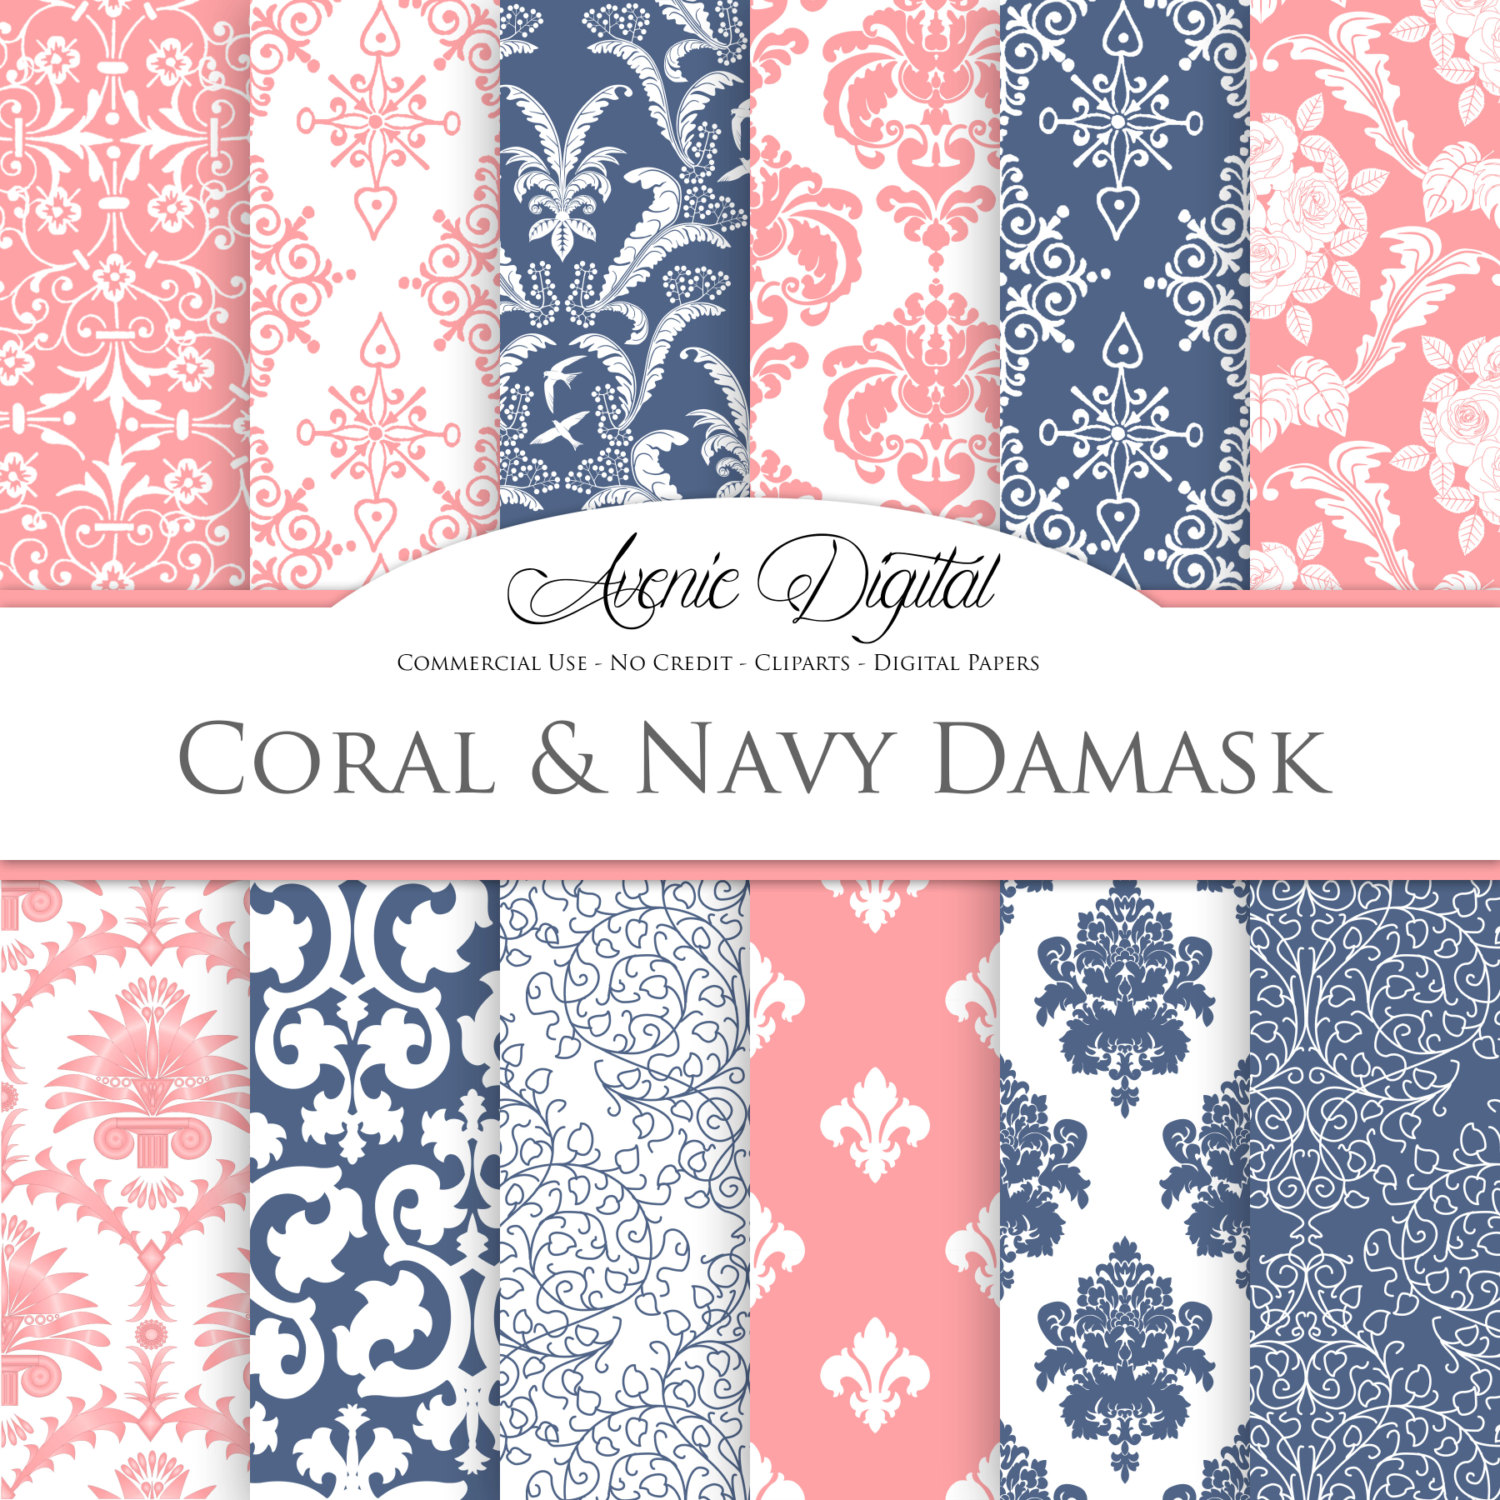 Damask clipart coral Backgrounds and Navy a Damask